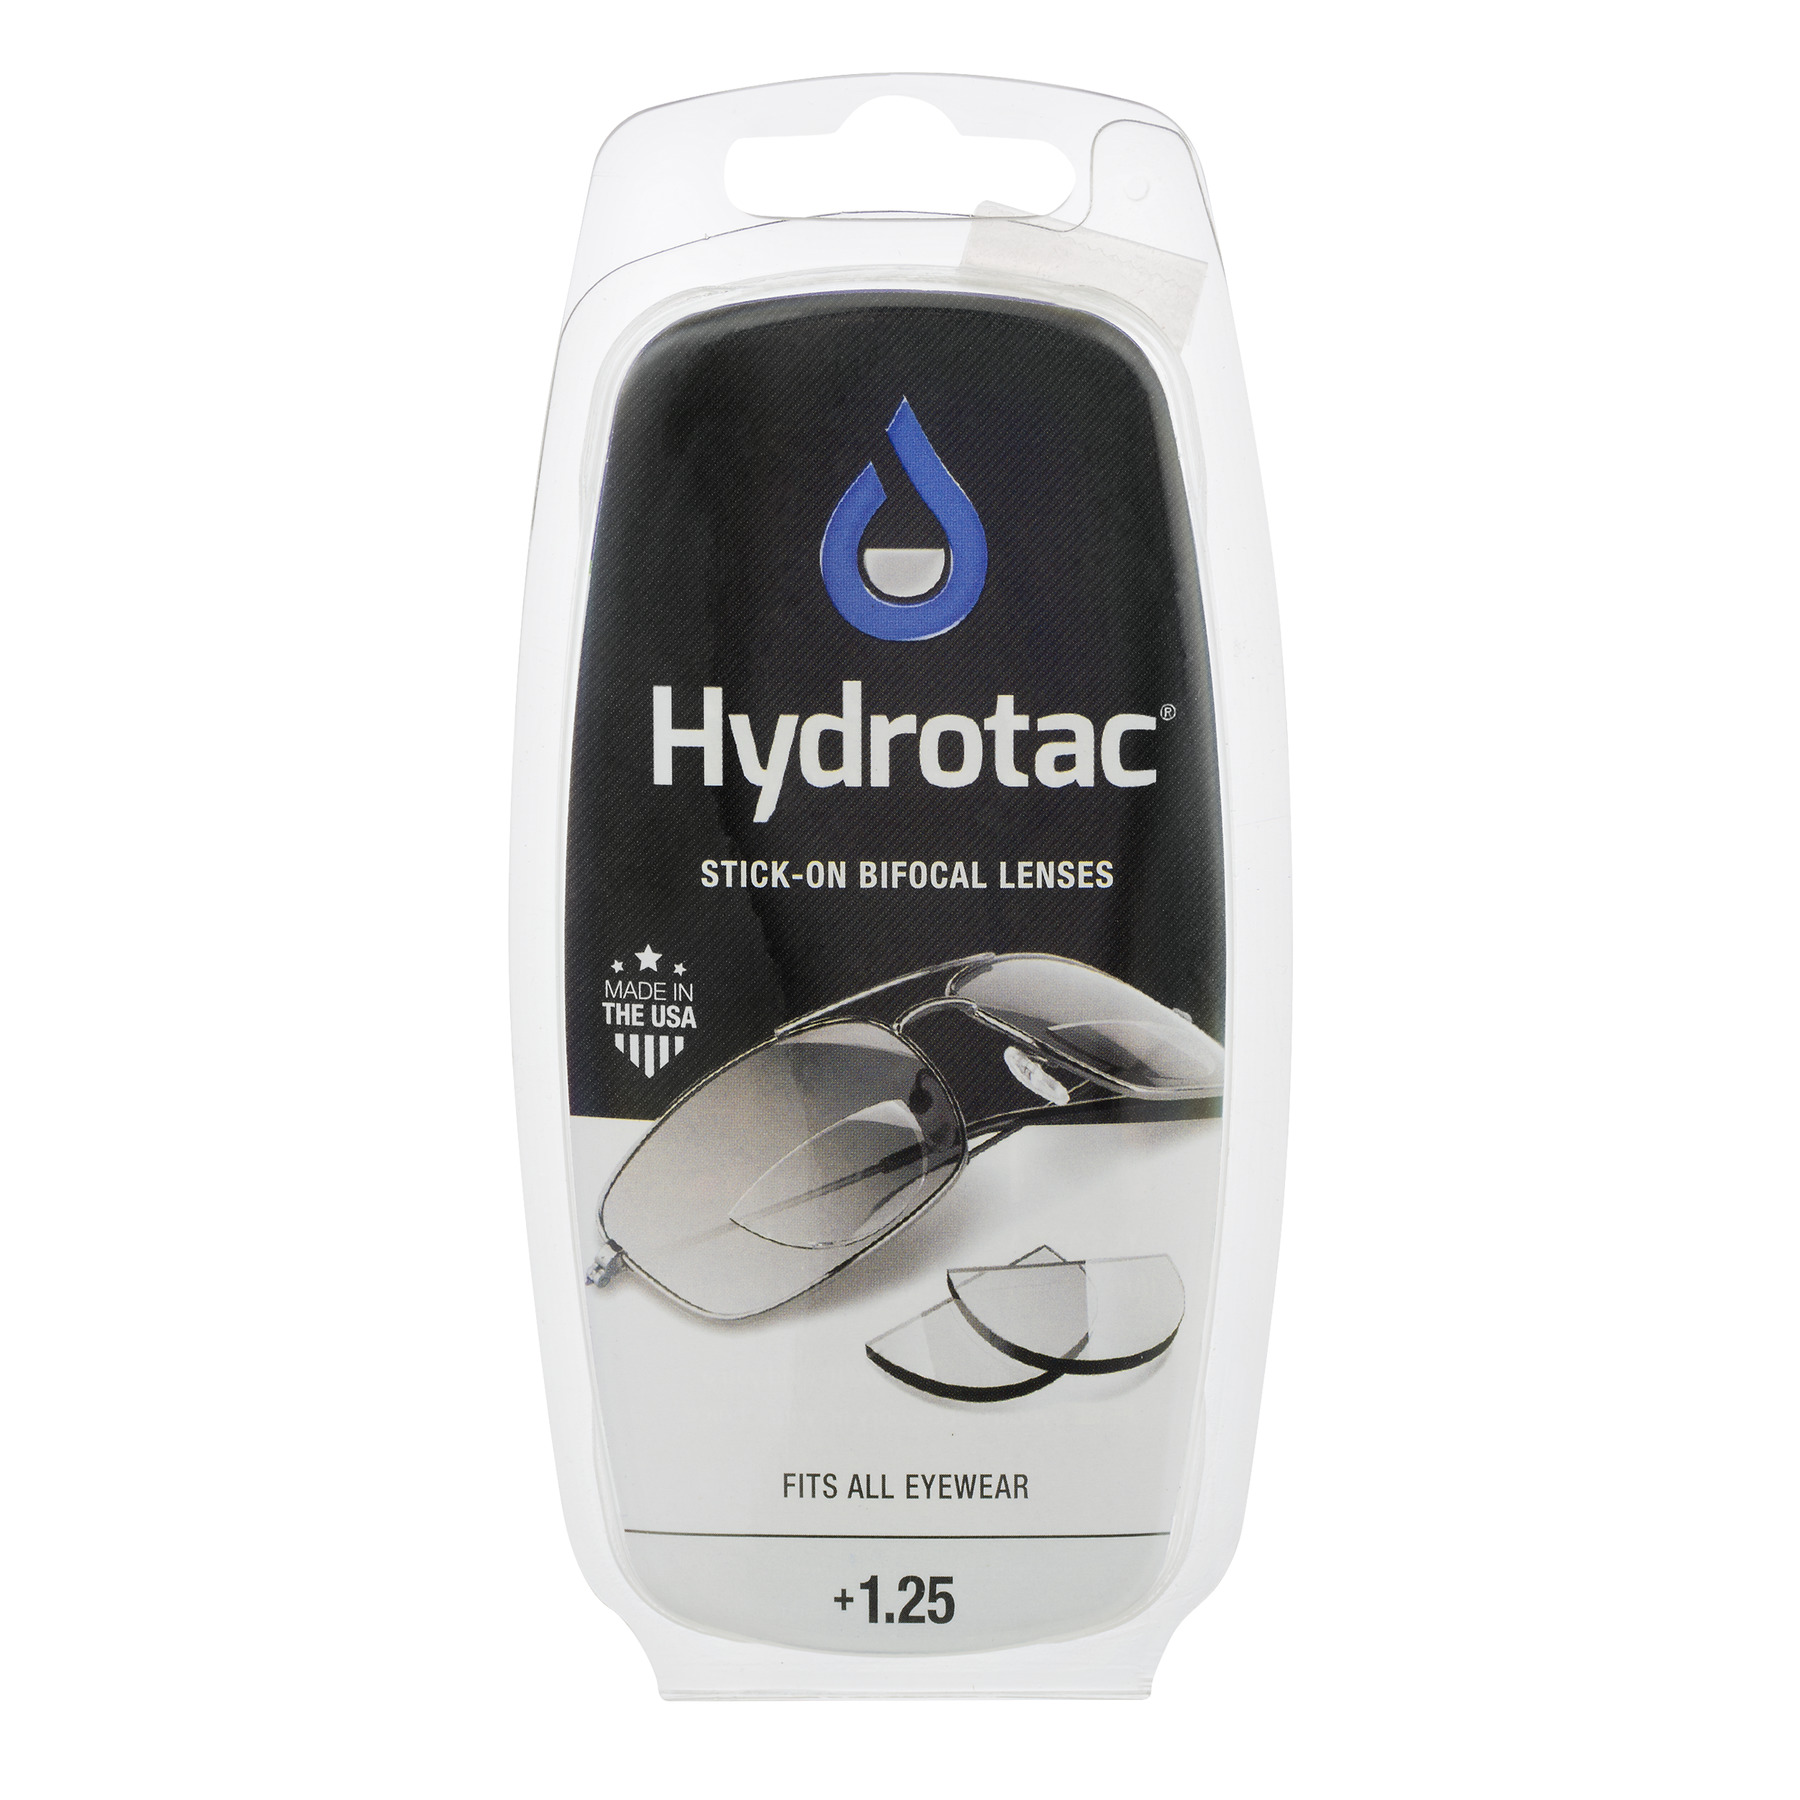 Hydrotac Stick-on Bifocal Lenses, 1.25